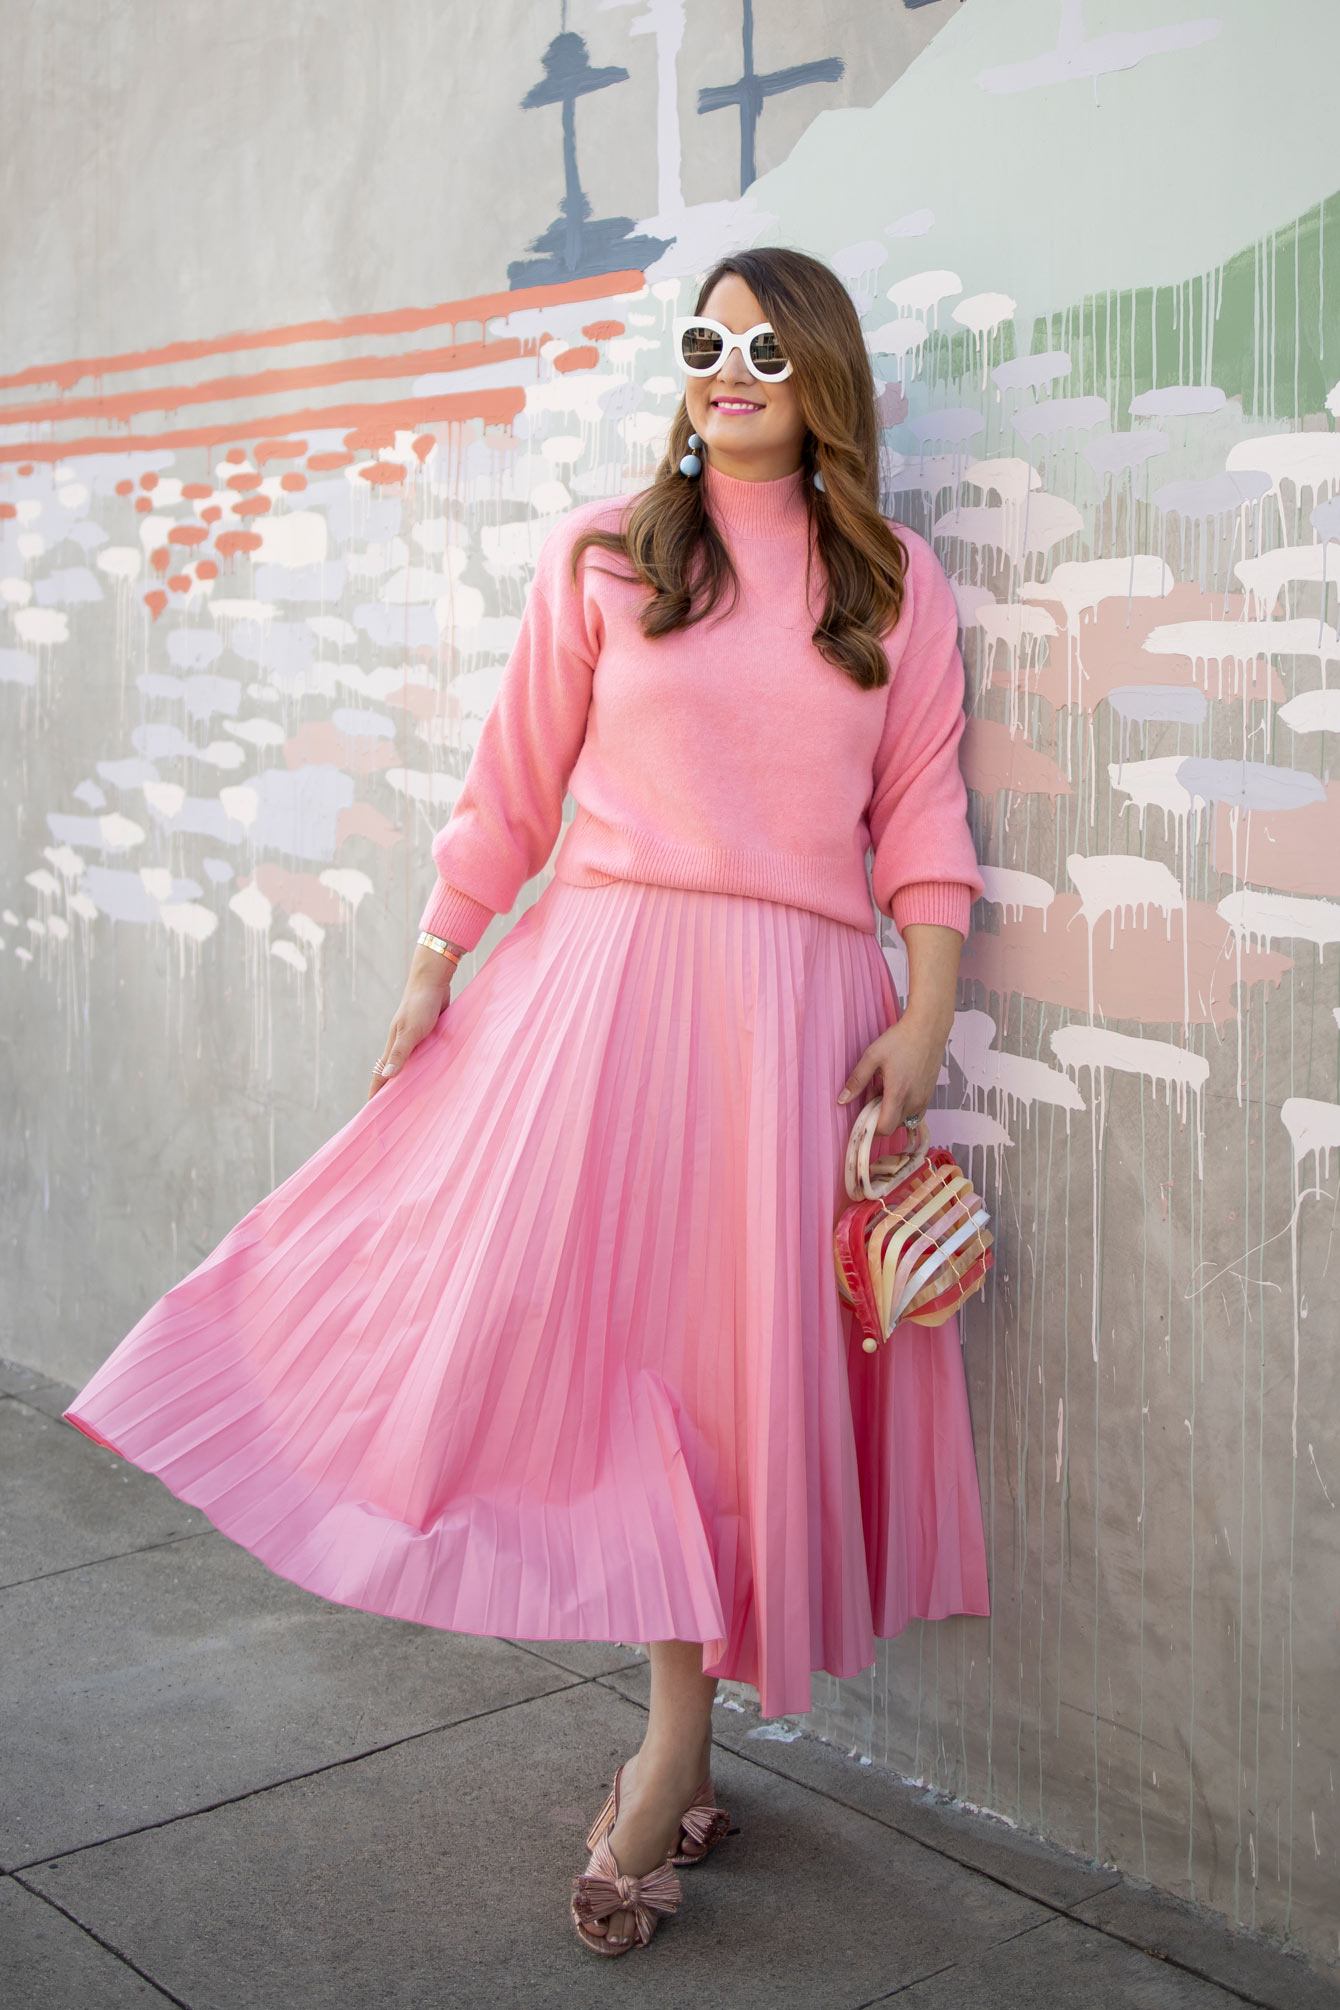 ASOS Pink Pleated Skirt